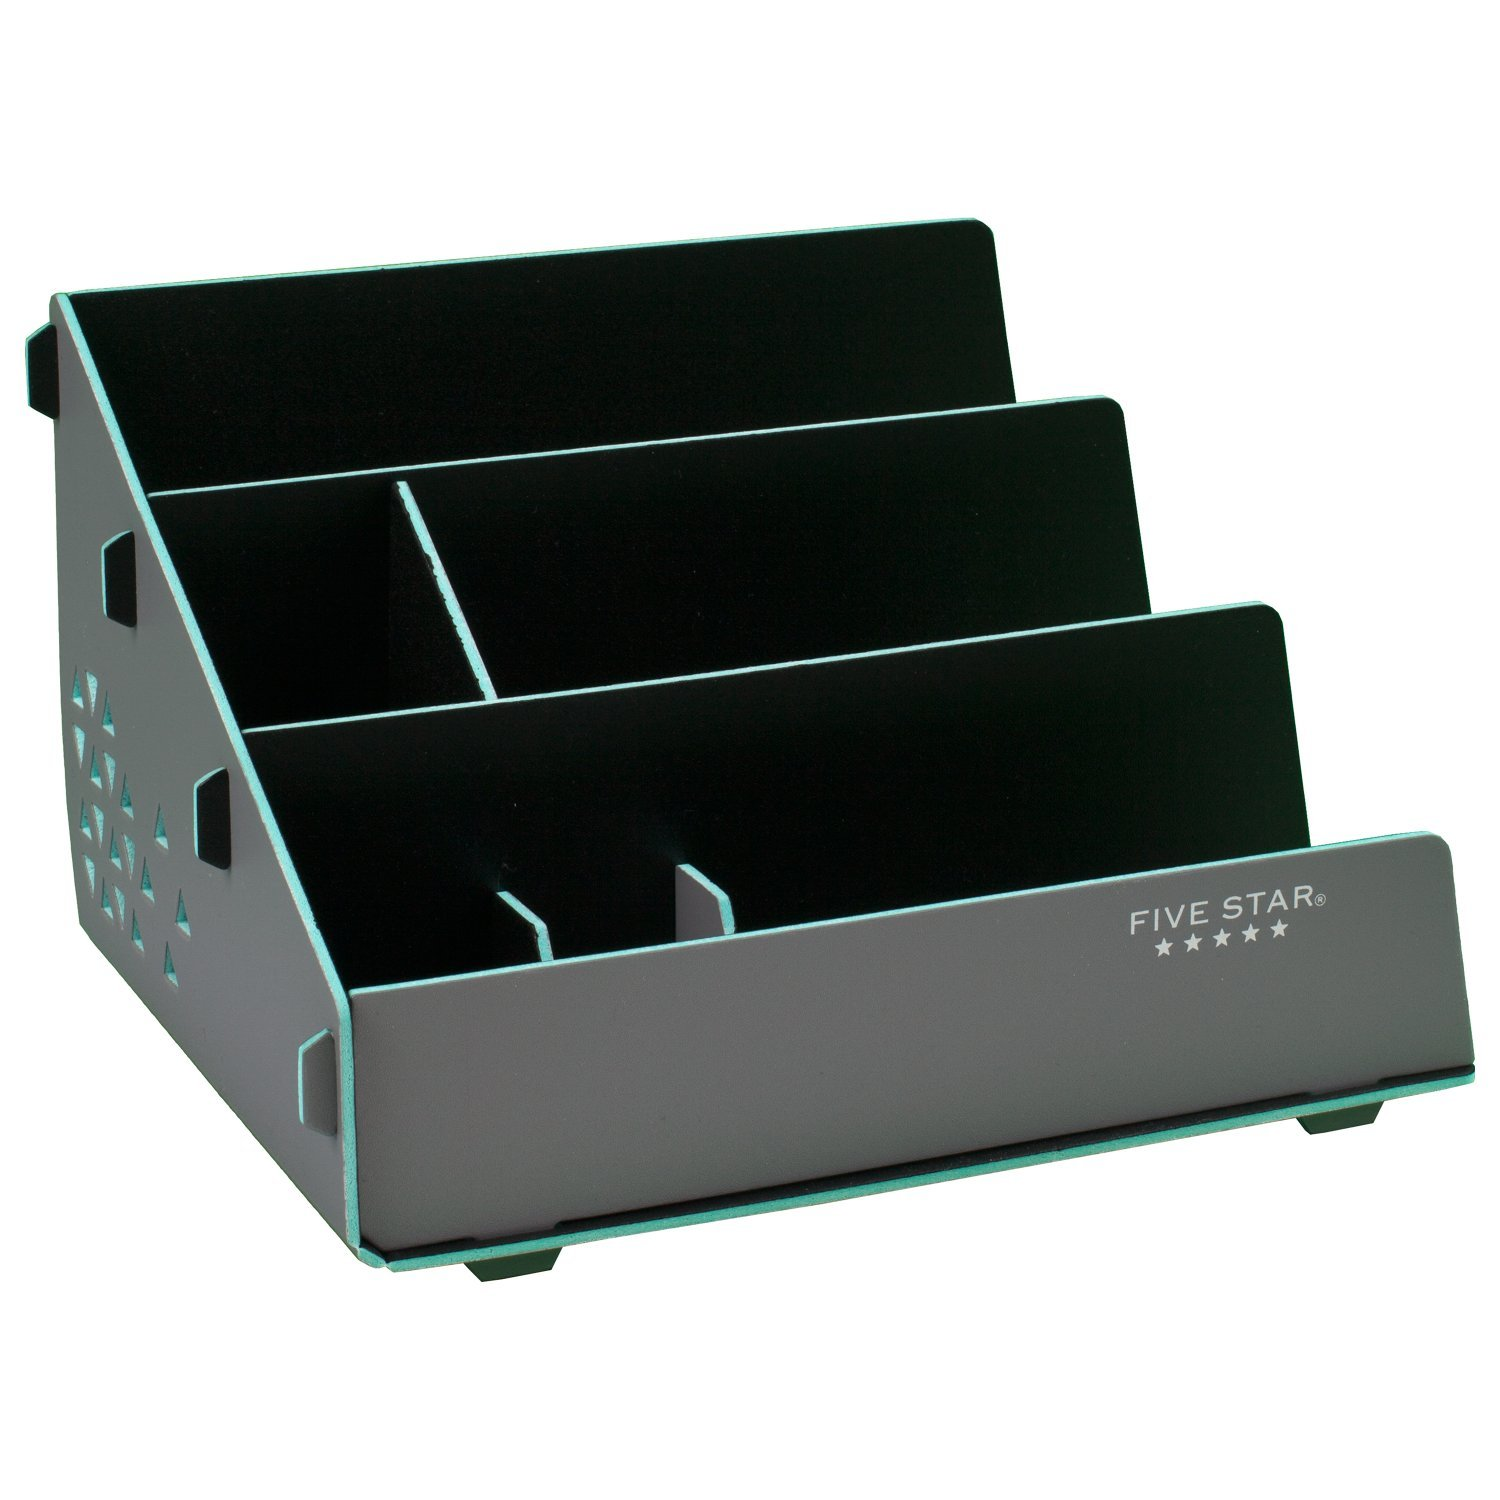 Five Star Desk Organizer, 5 Compartments, Tech Charging Station, Stadium, Gray / Teal (73258)